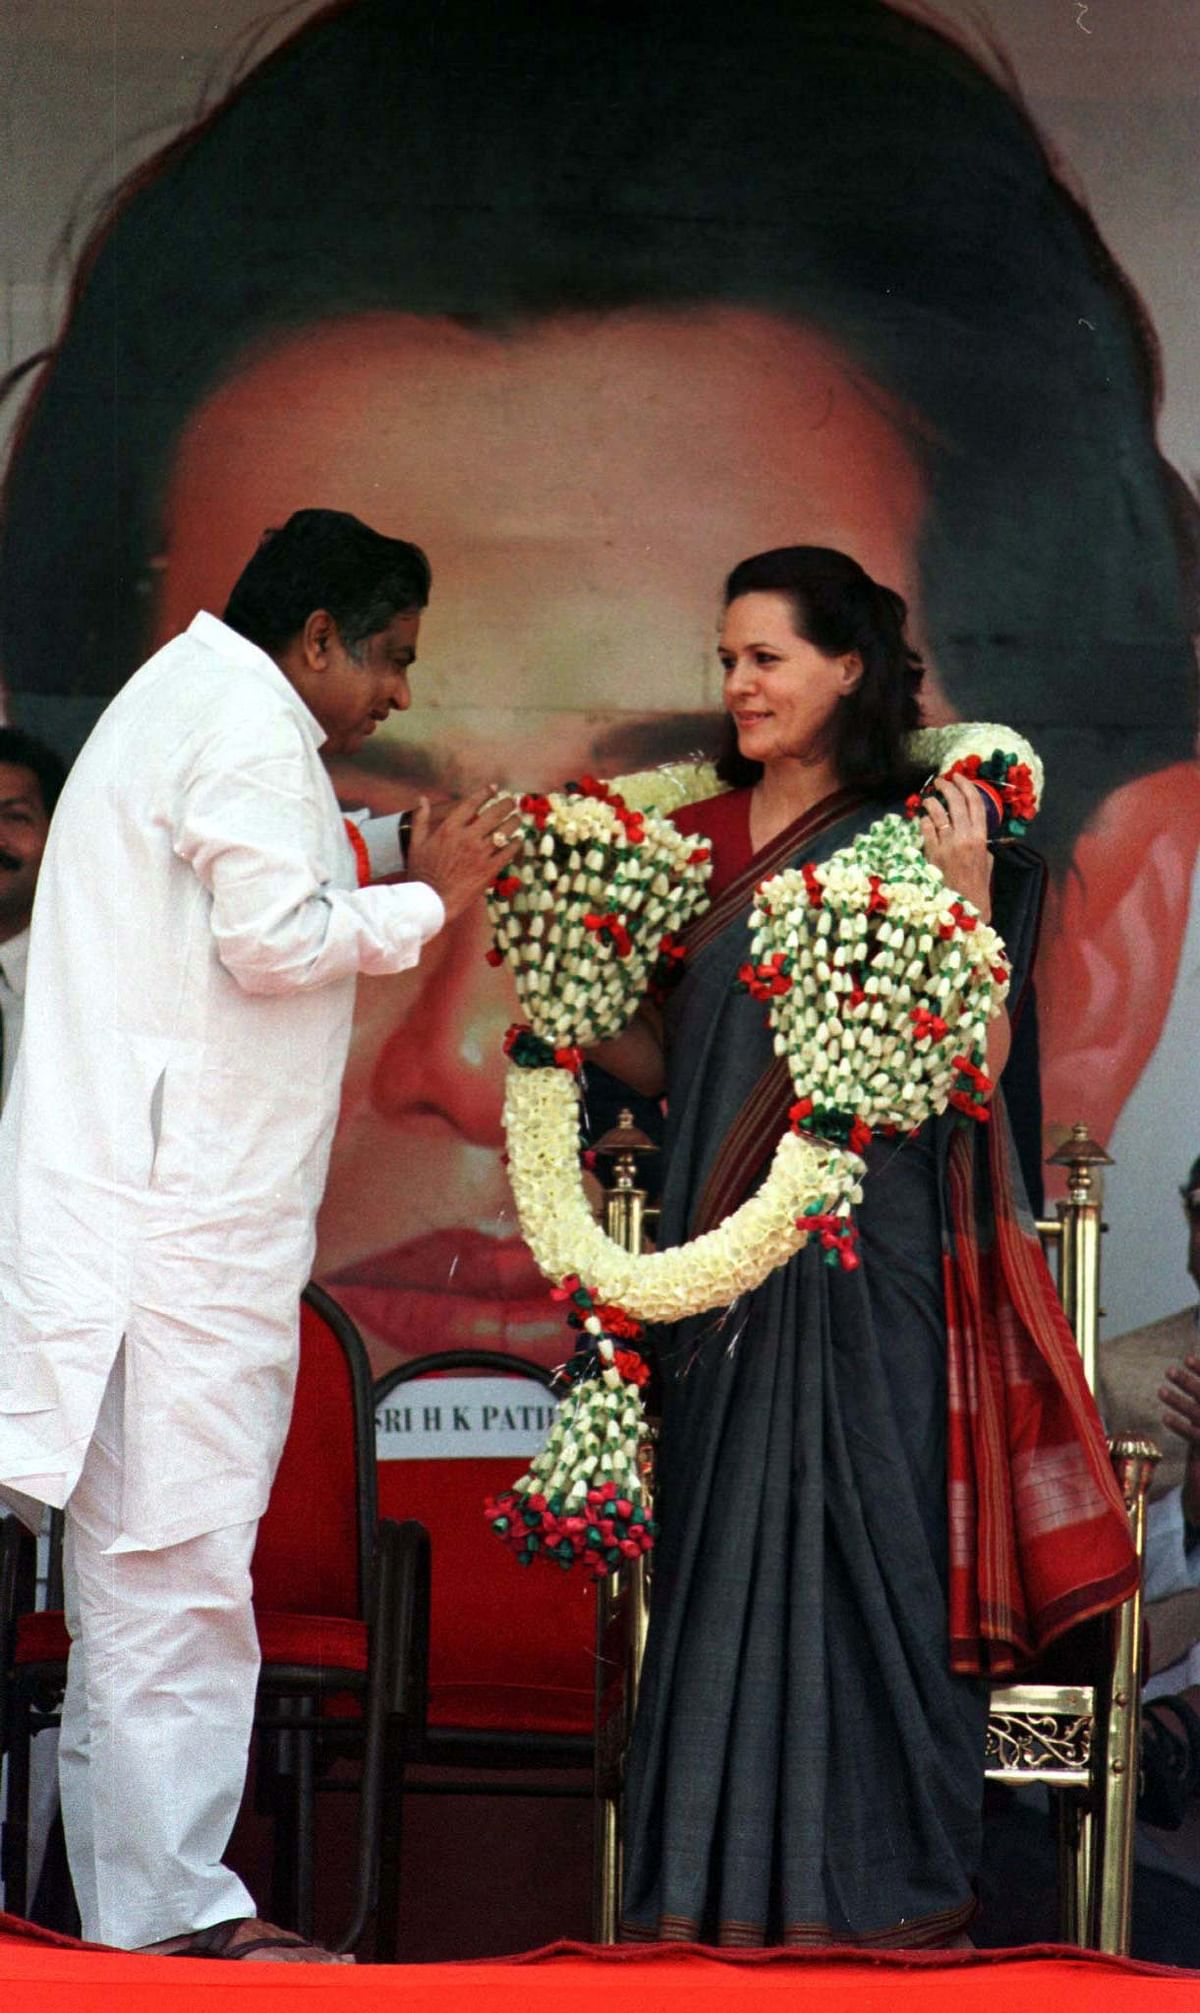 A file photo of Sonia Gandhi being garlanded in Bangalore. (Photo: Reuters)